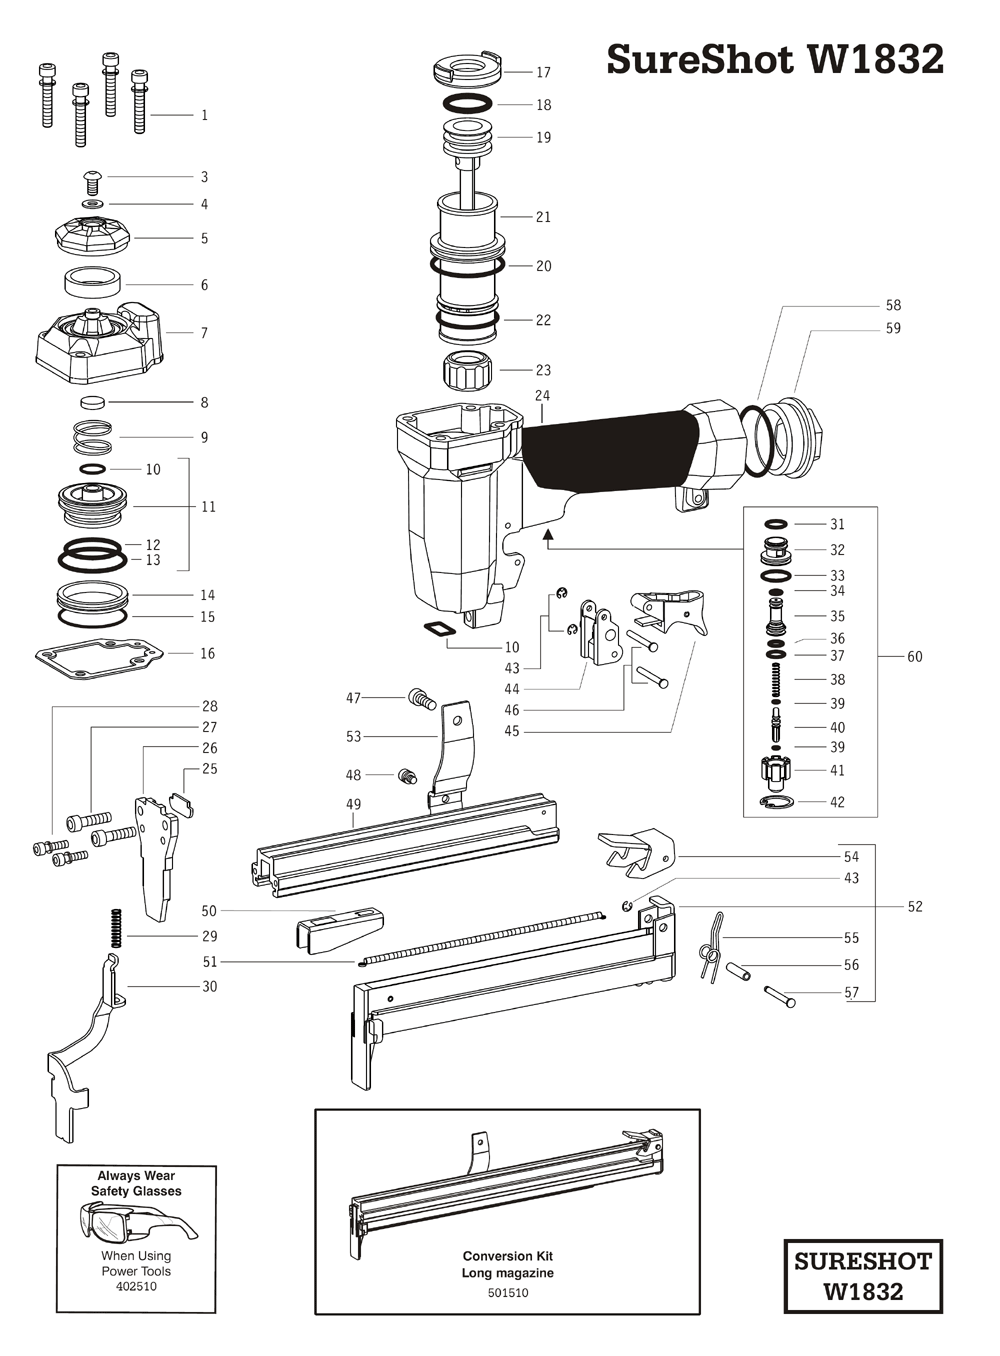 Duo-Fast W1832 Parts